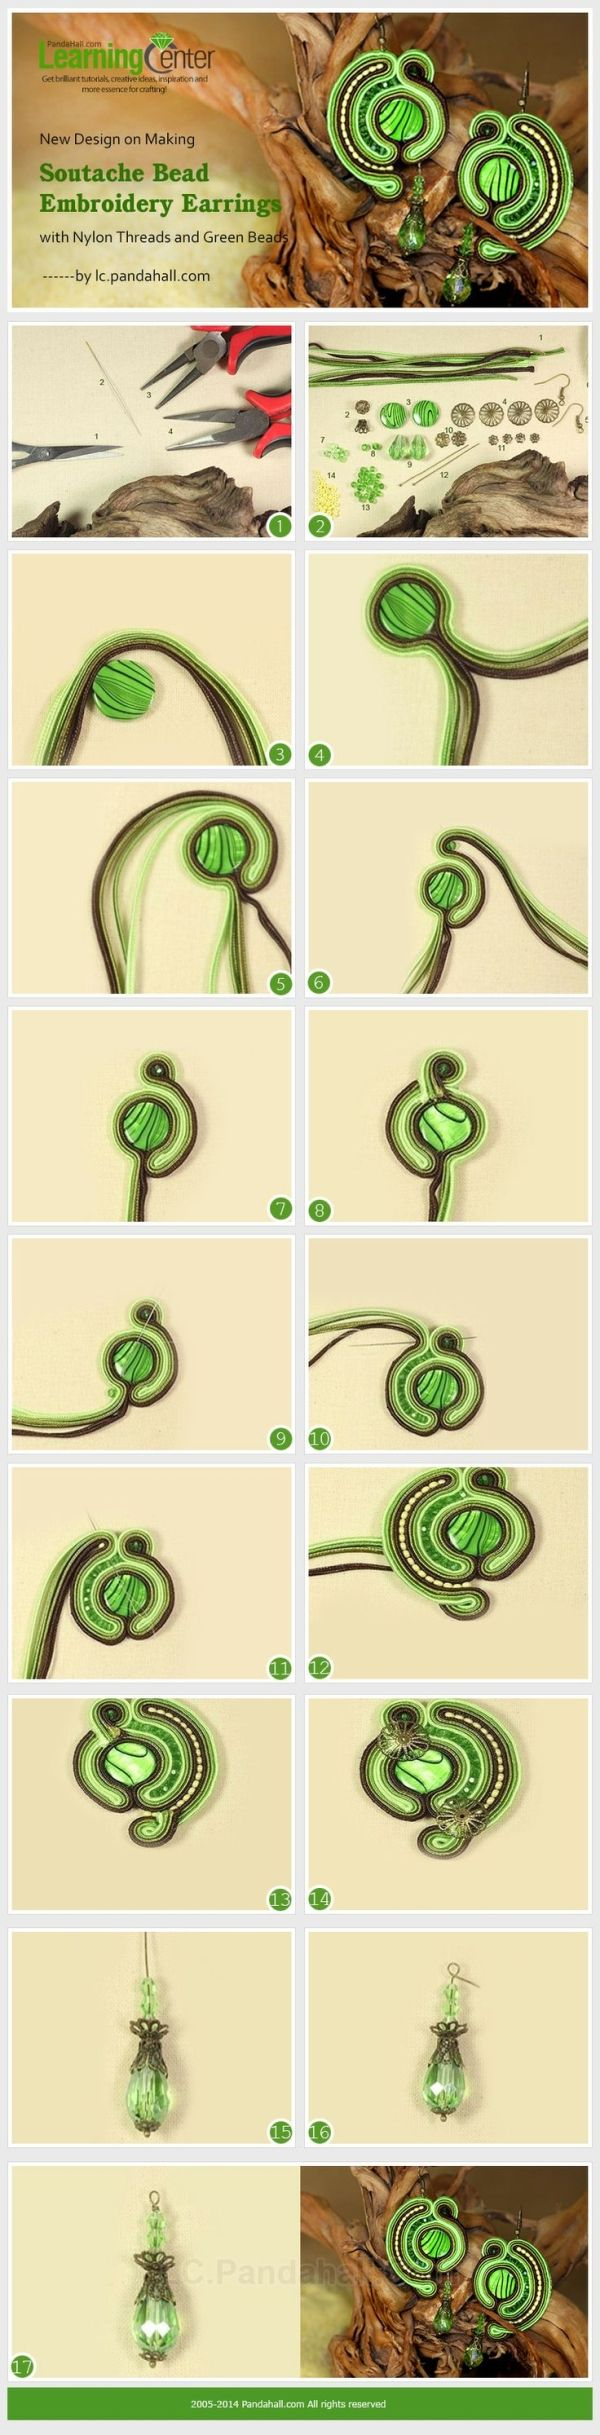 New Design on Making Soutache Bead Embroidery Earrings with Nylon Threads and Green Beads by Jersica